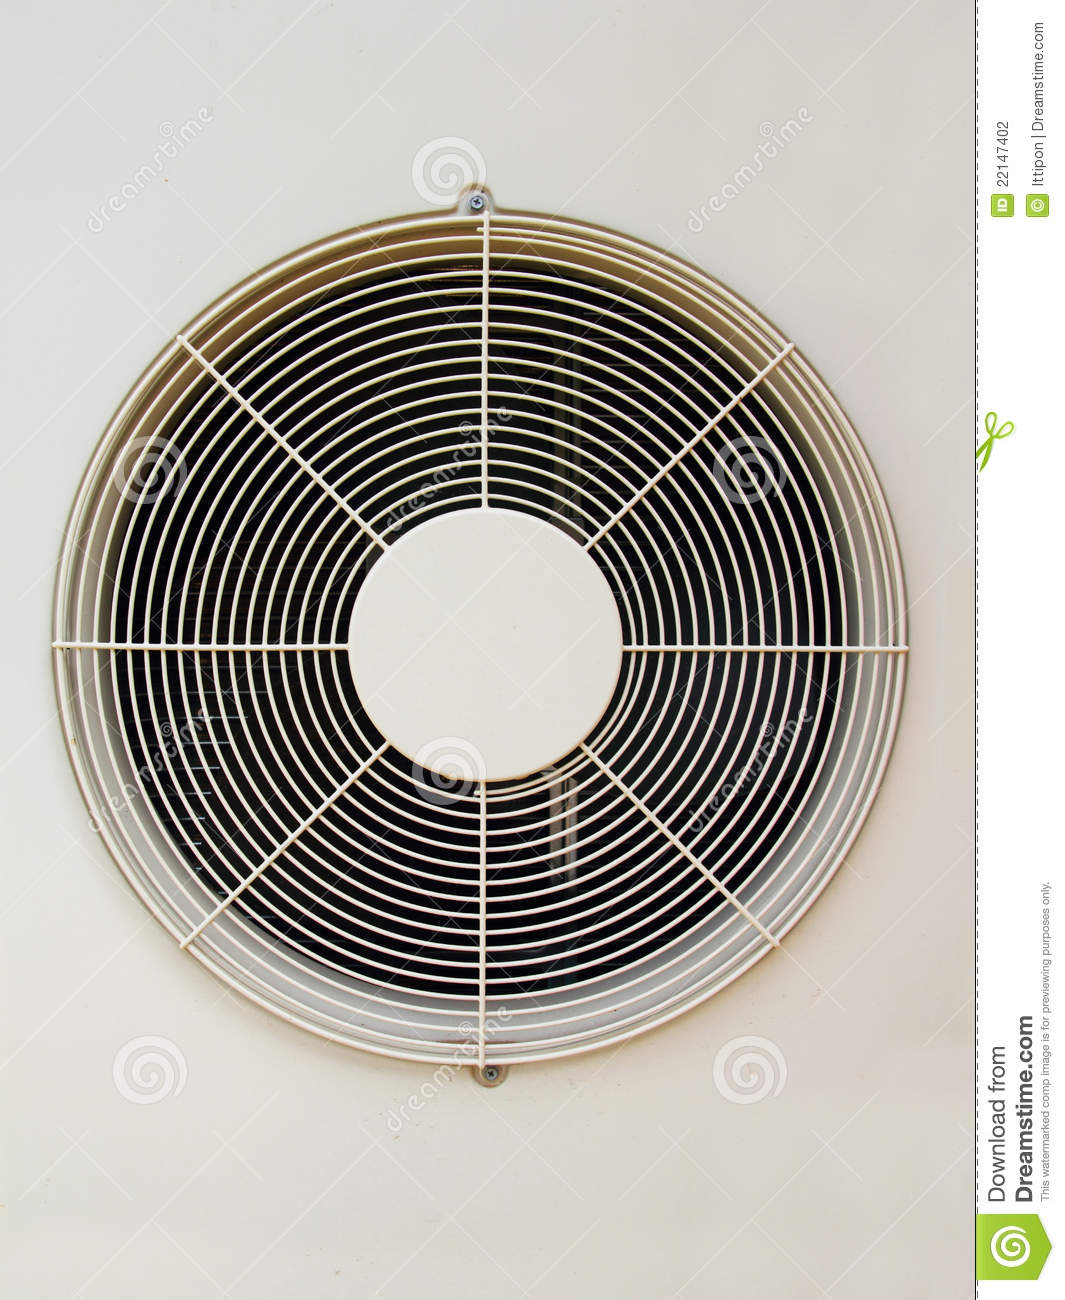 Air conditioning Fan Stock Photography Image: 22147402 #82A229